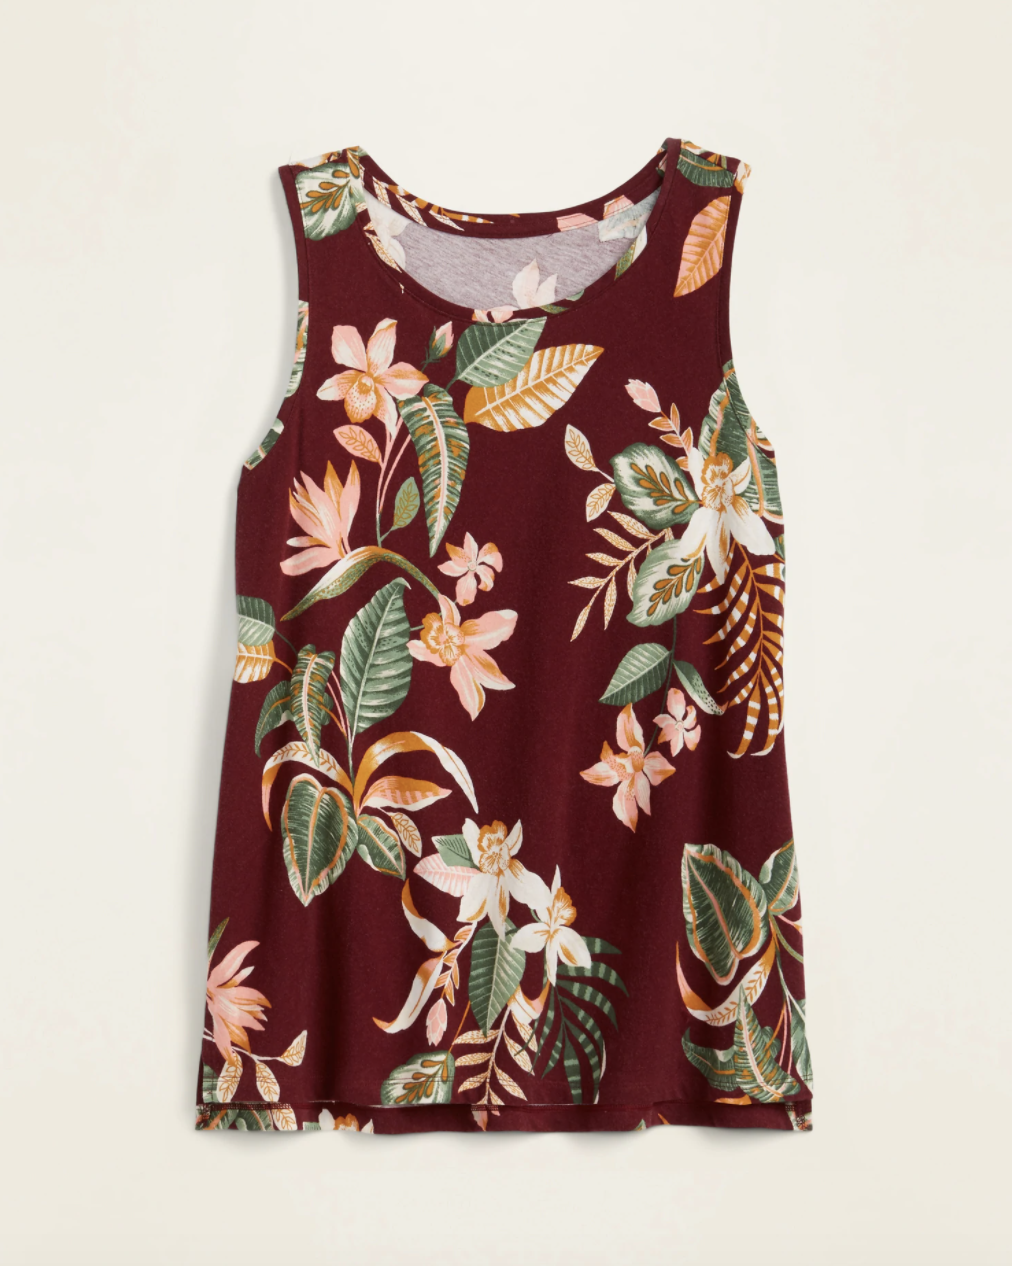 The floral tank top in burgundy